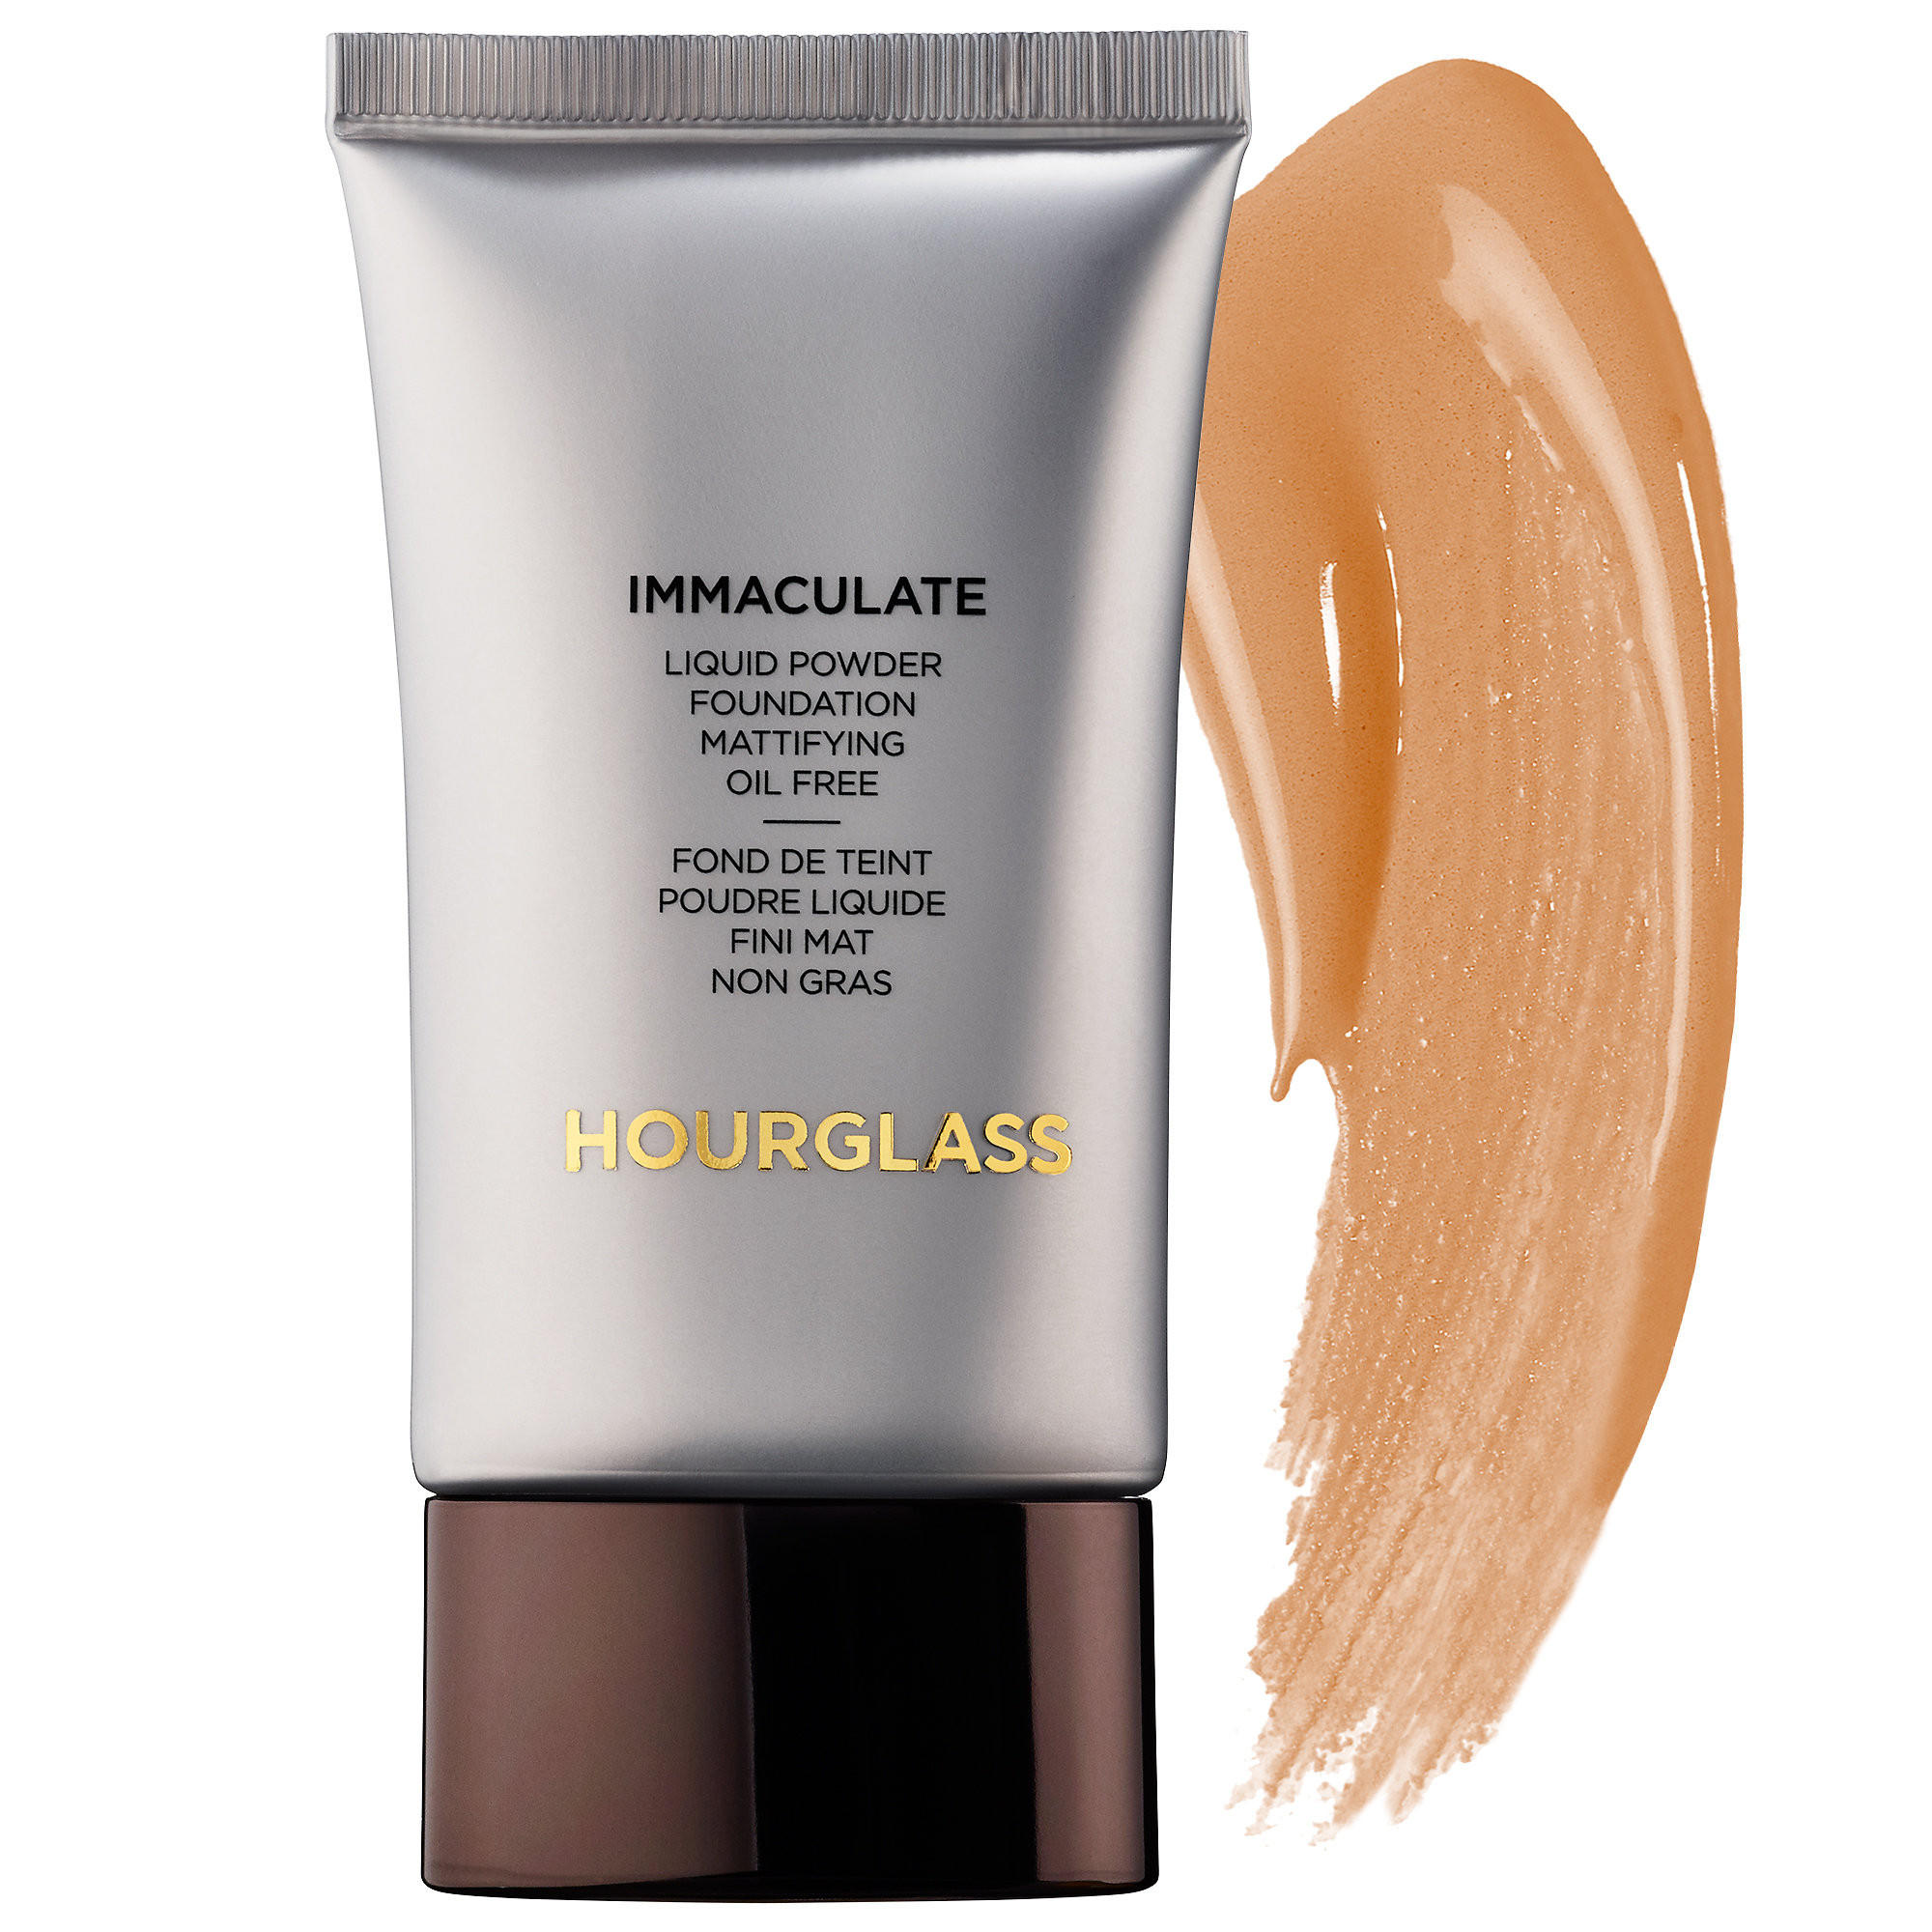 Hourglass Immaculate Liquid Powder Foundation Oil-Free Honey